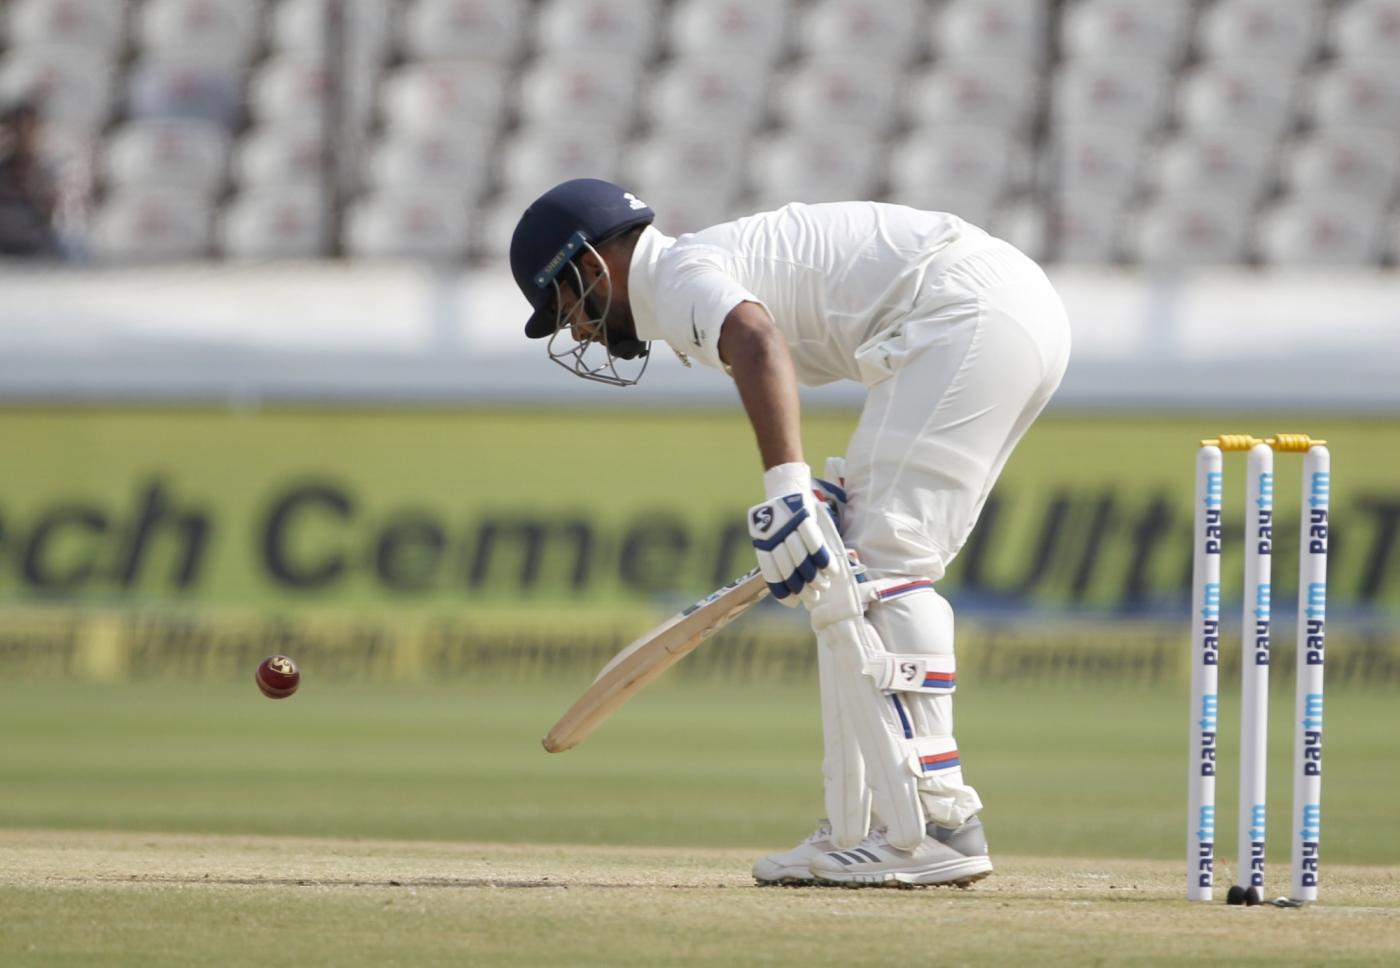 Hyderabad: India's Rishabh Pant in action on Day 3 of the Second Test match between India and West Indies at Rajiv Gandhi International Stadium in Hyderabad on Oct 14, 2018. (Photo: Surjeet Yadav/IANS) by .